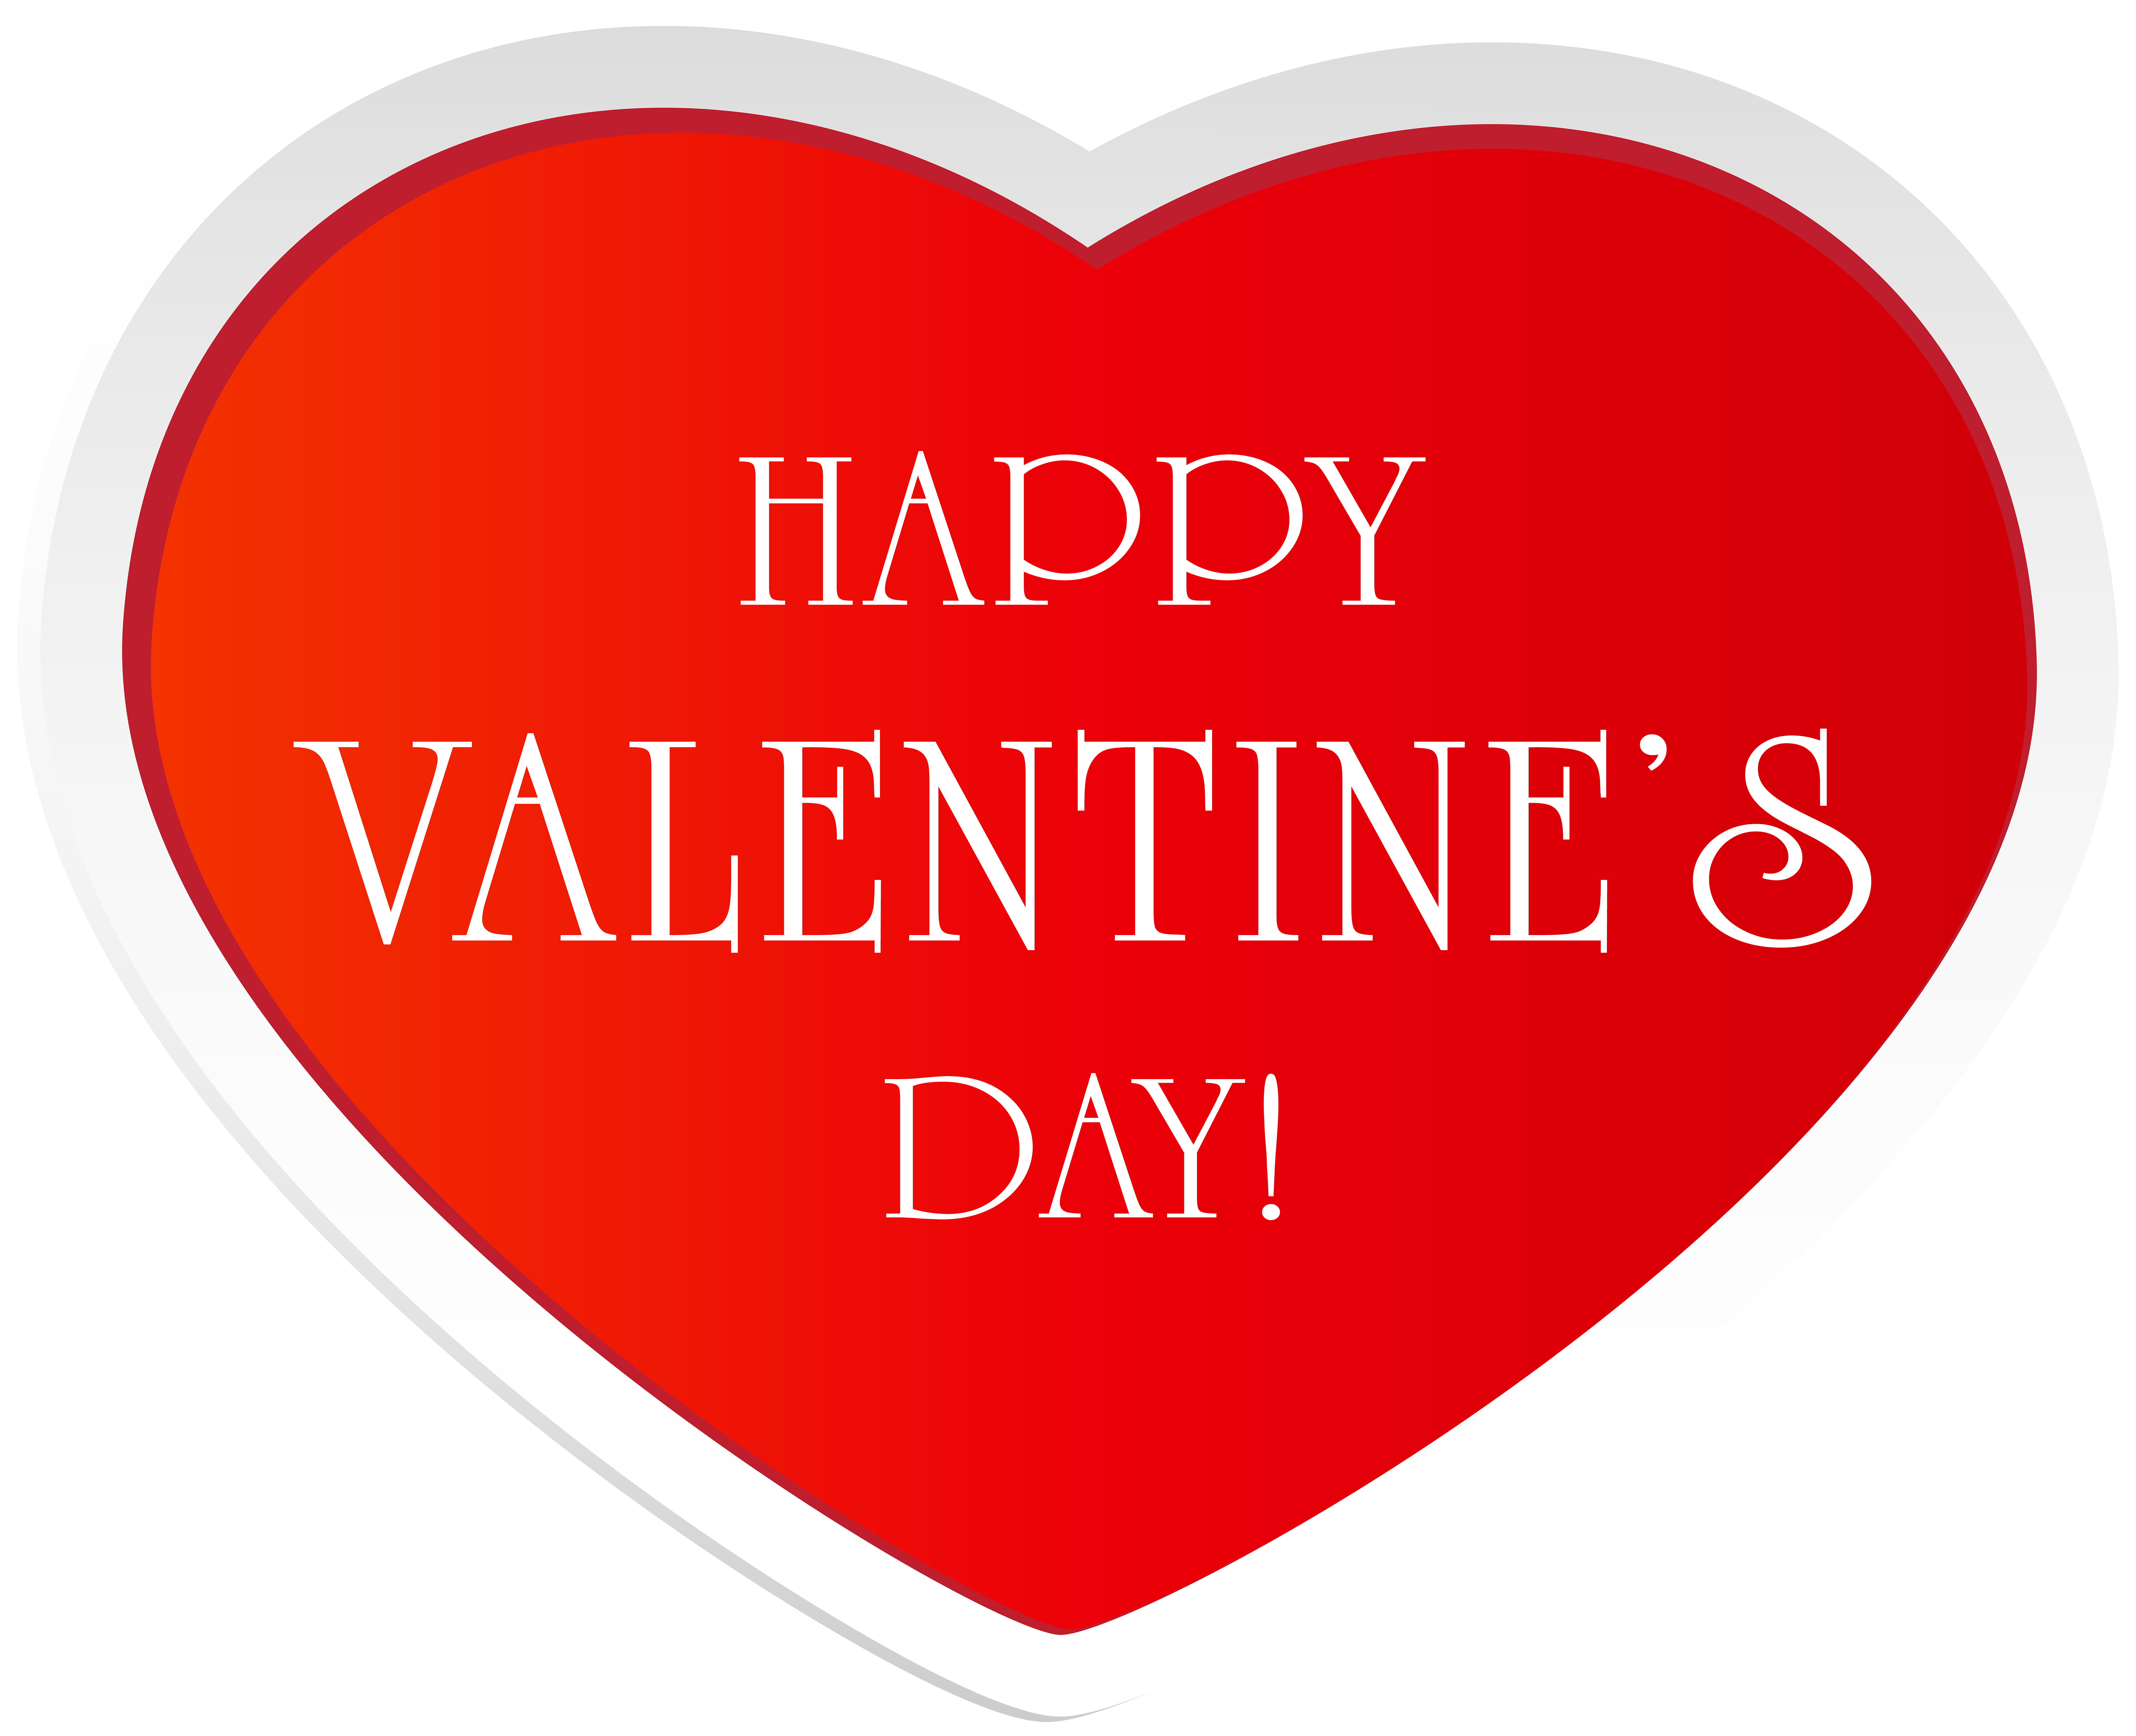 Happy heart clipart vector Happy Valentine's Day Red Heart Clip Art Image | Gallery ... vector